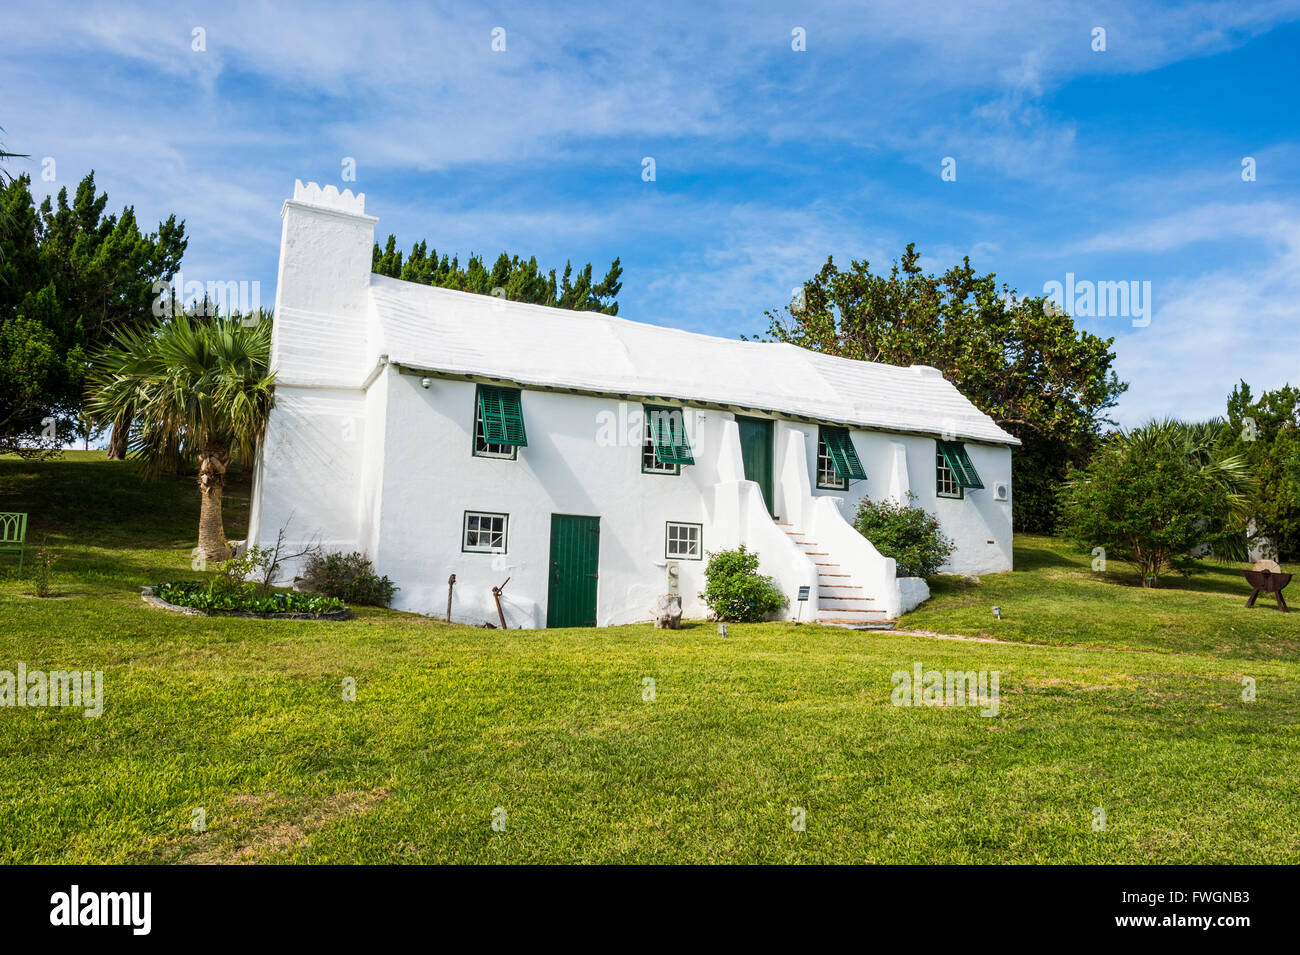 The carter house museum, St. David's island, Bermuda, North America - Stock Image